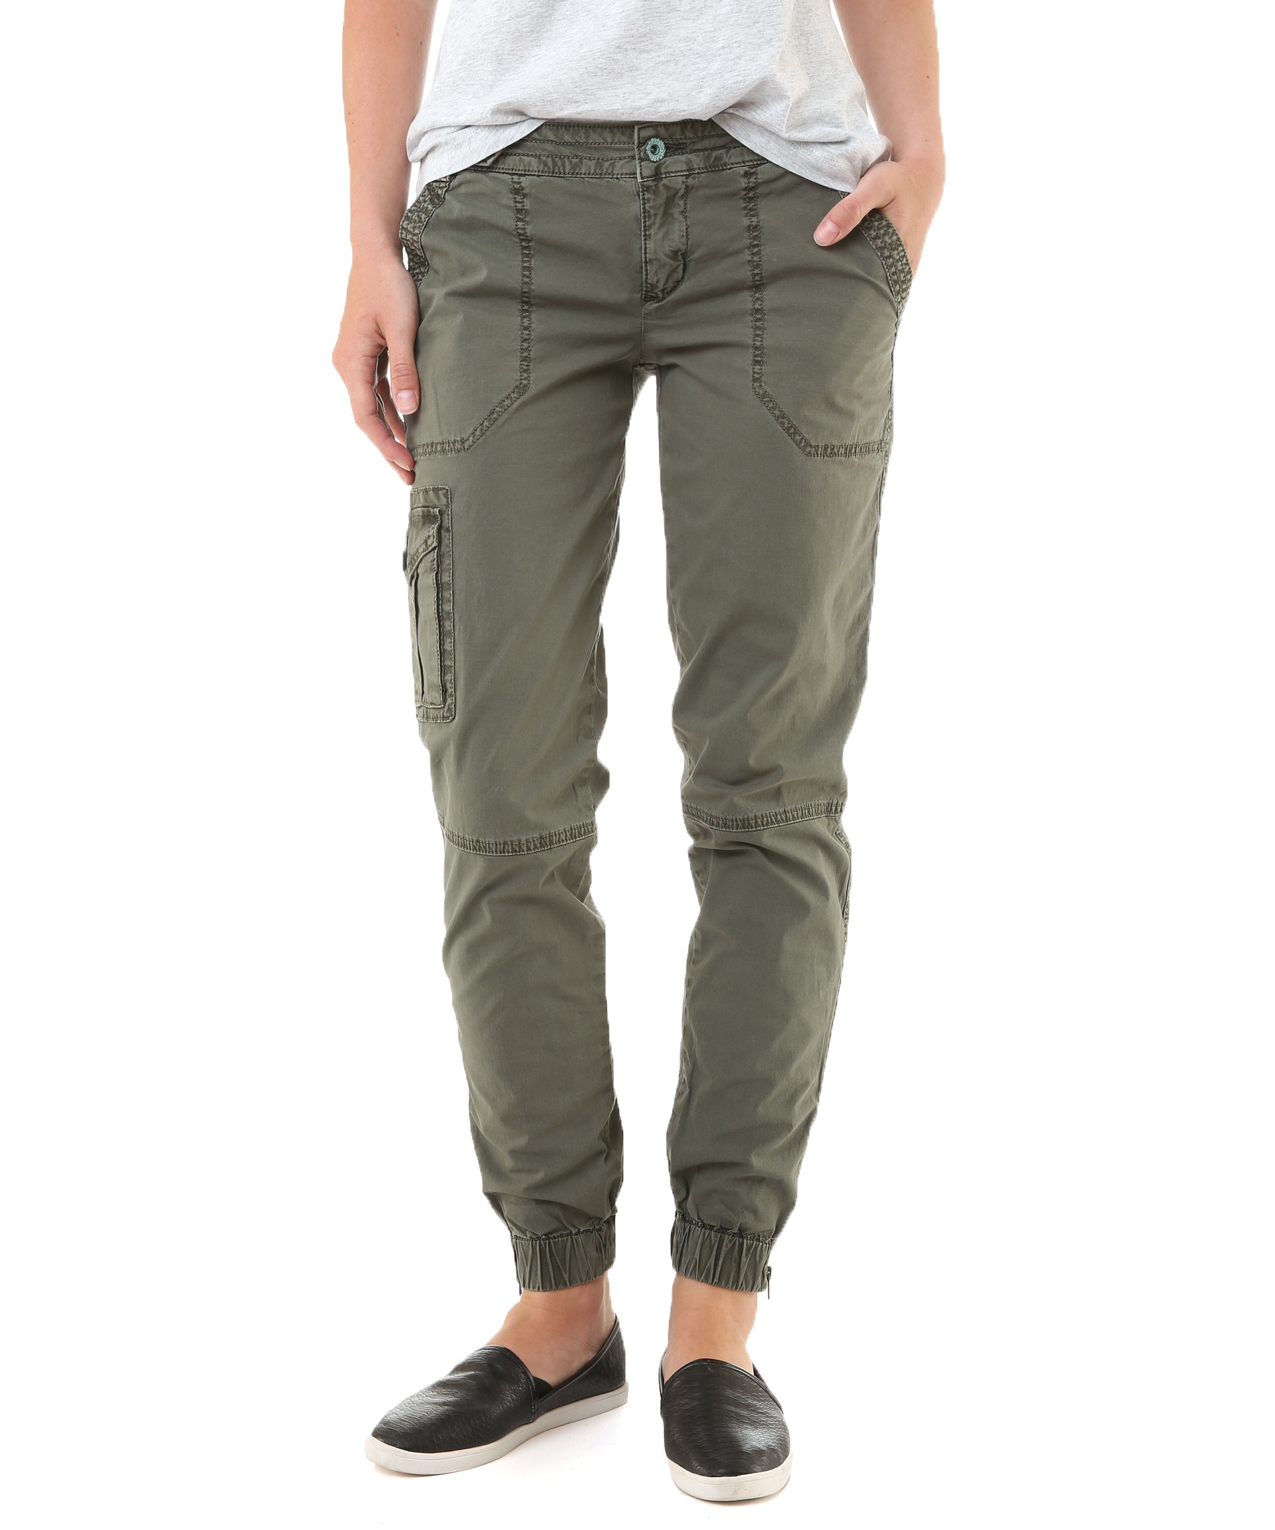 Cadet Cargo Skinny Military Guess